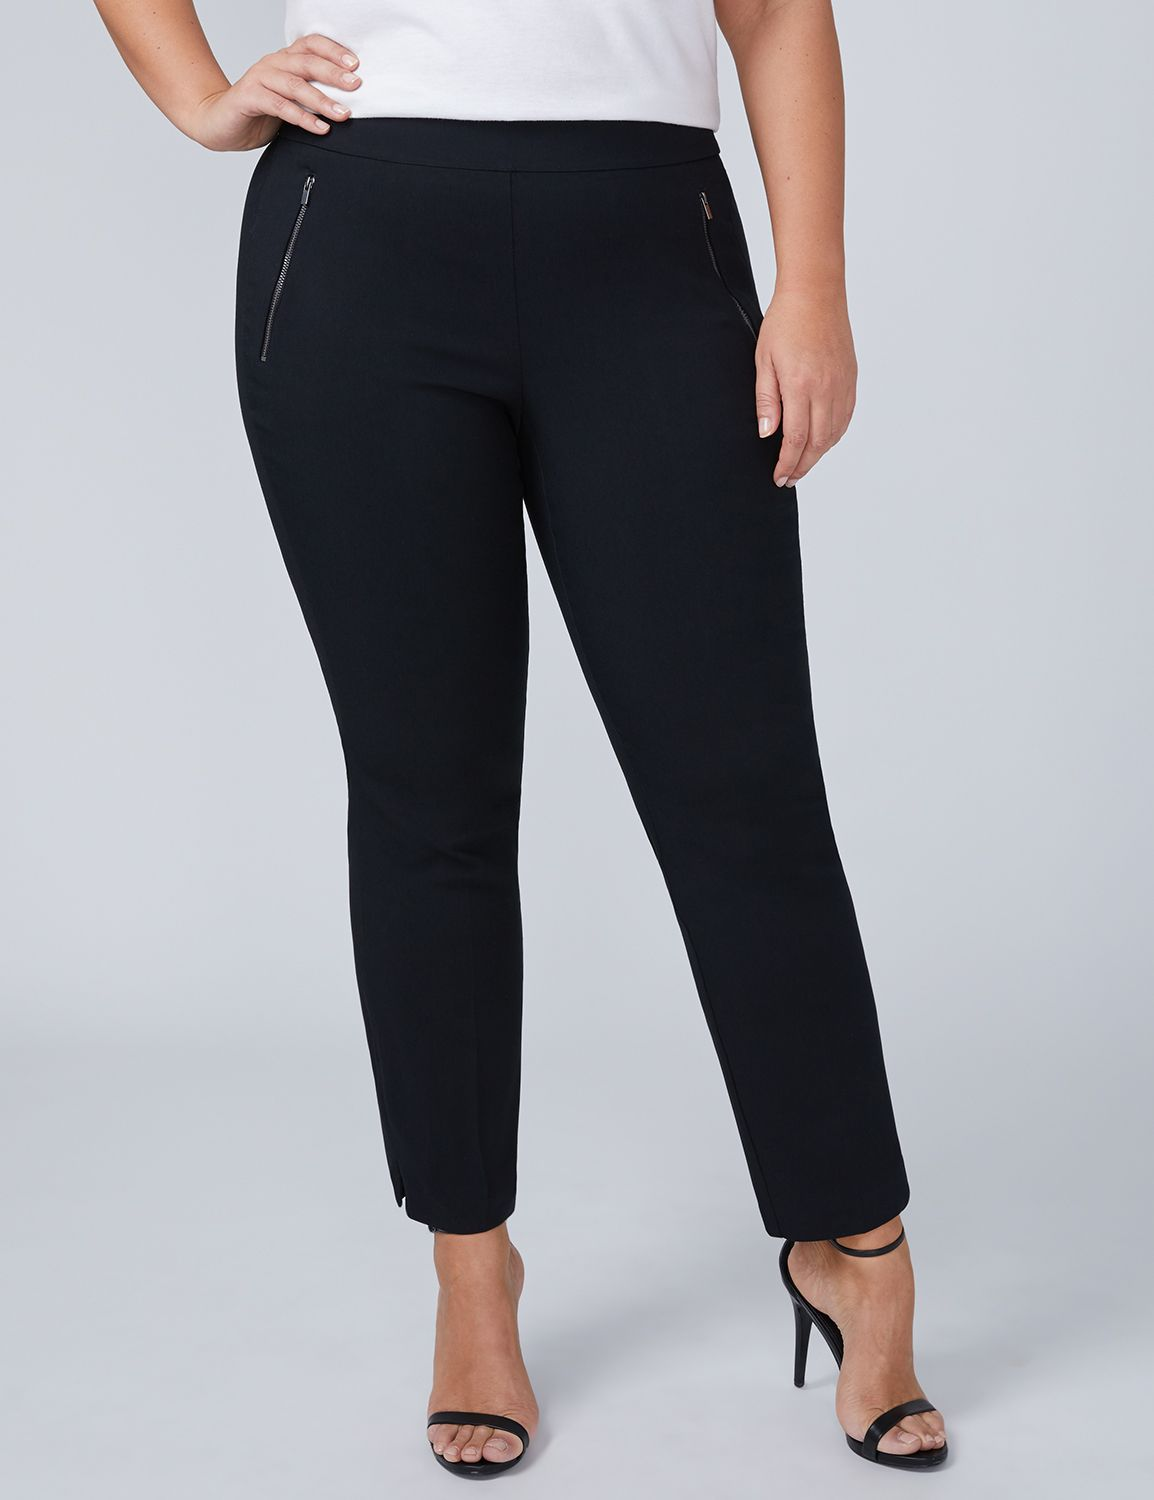 Lane Bryant Womens Allie Sexy Stretch Ankle Pant - Pull On 12 Black